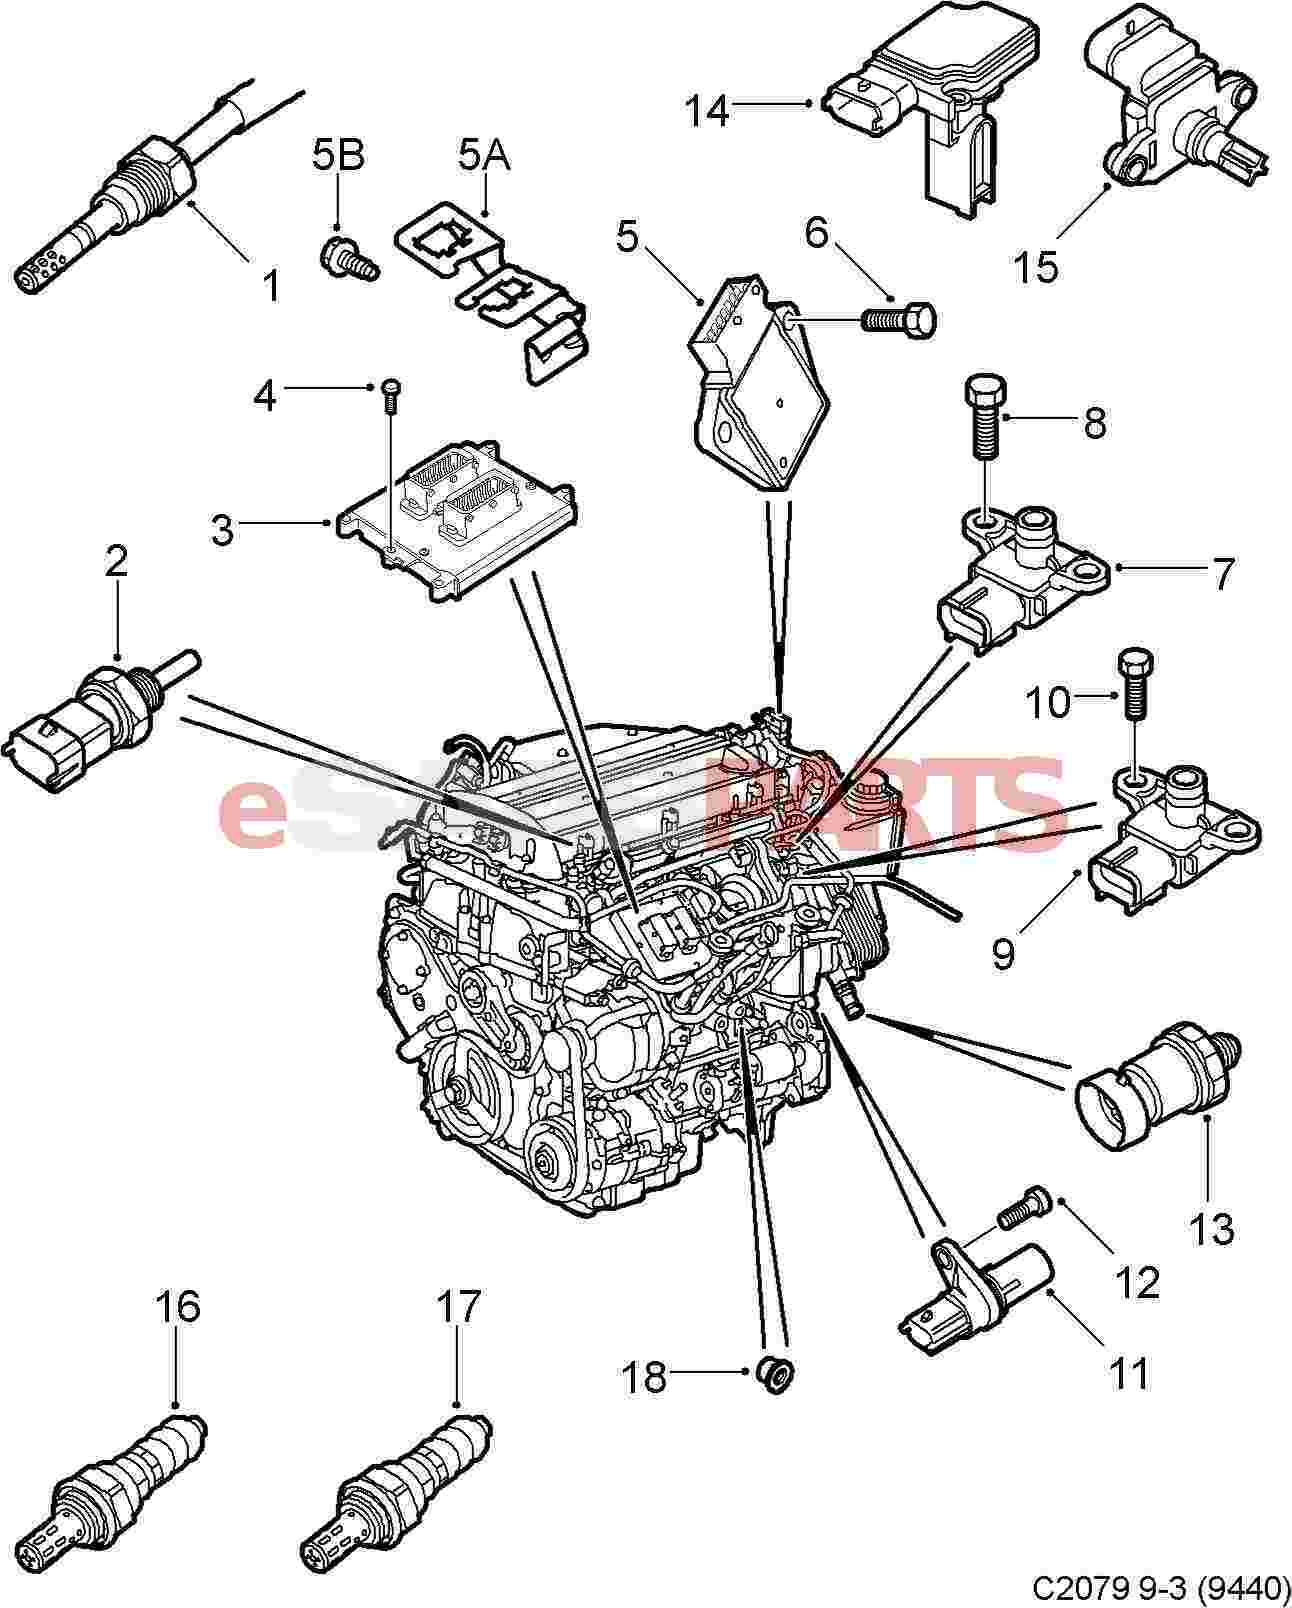 hight resolution of 2003 saab 9 5 engine diagram wiring library rh 14 muehlwald de saab 9 3